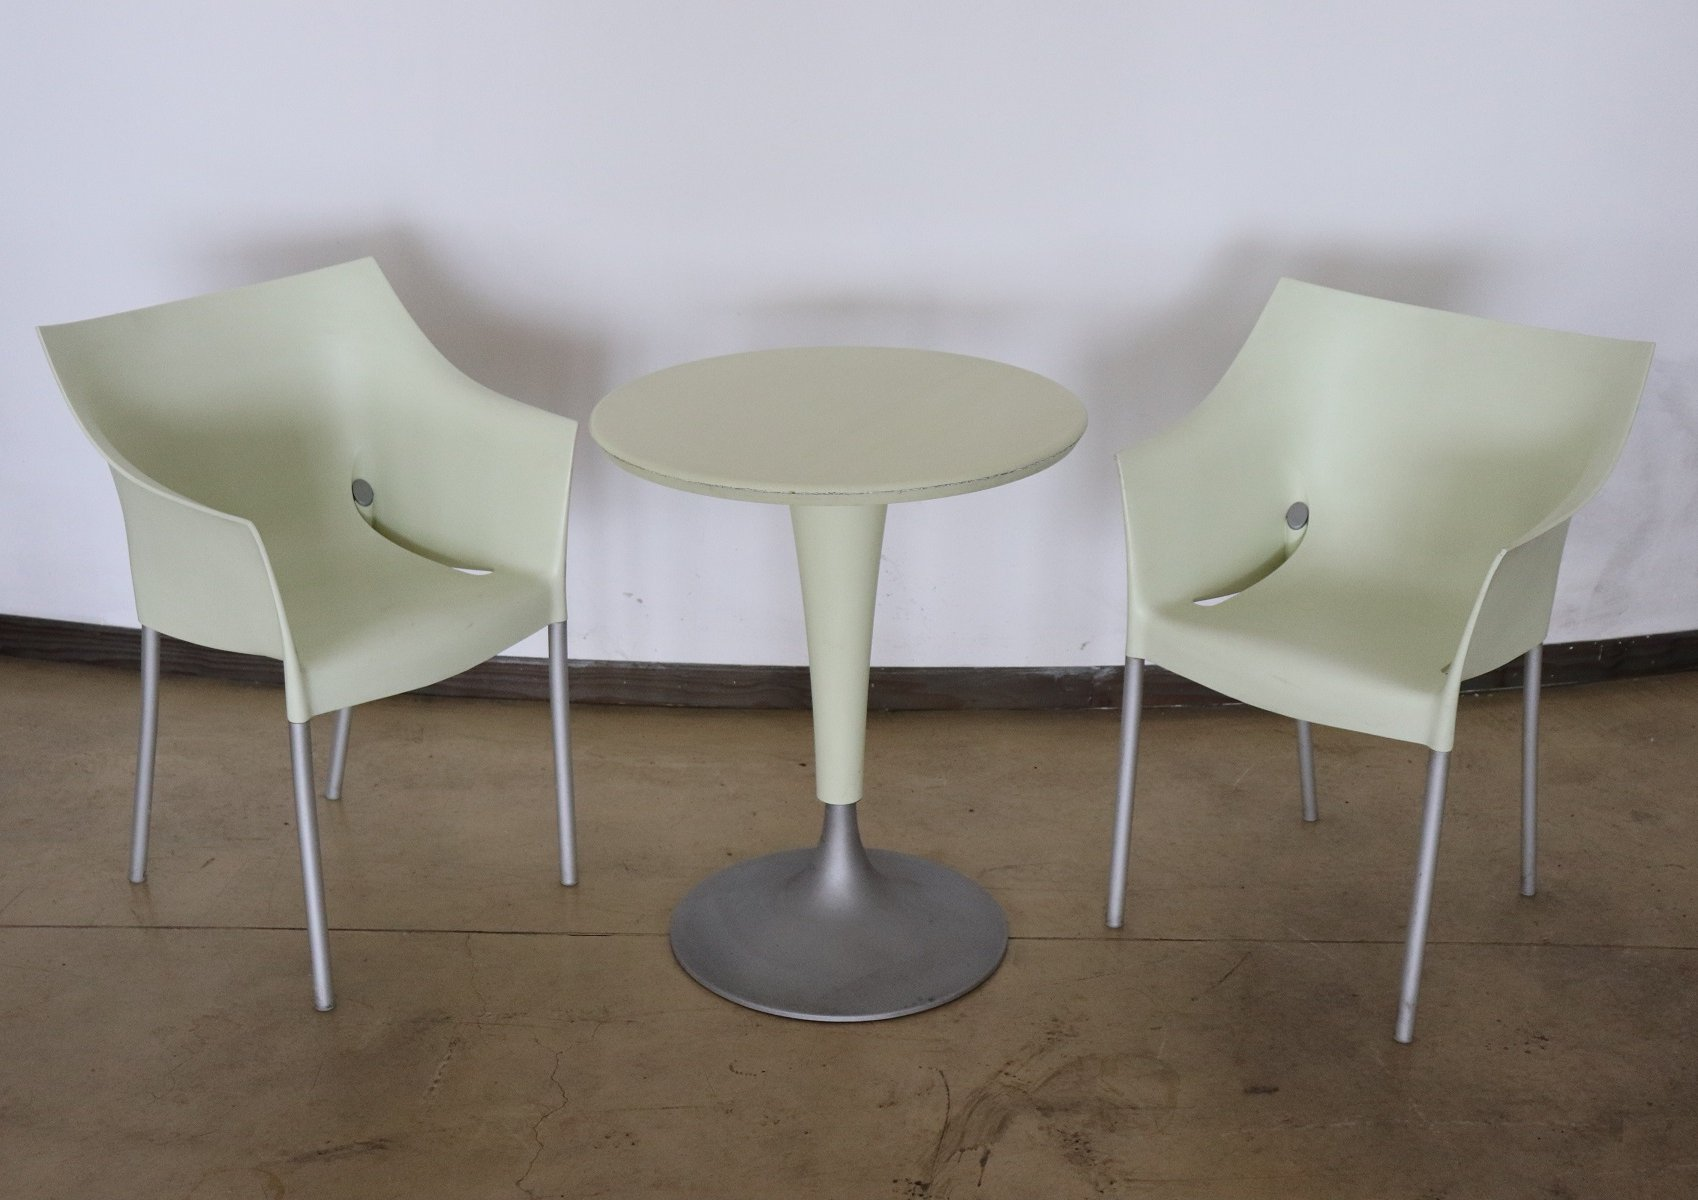 Living Room Bedroom Combo Ideas, Dr No Table Chairs Set By Philippe Starck For Kartell 1990s 111814